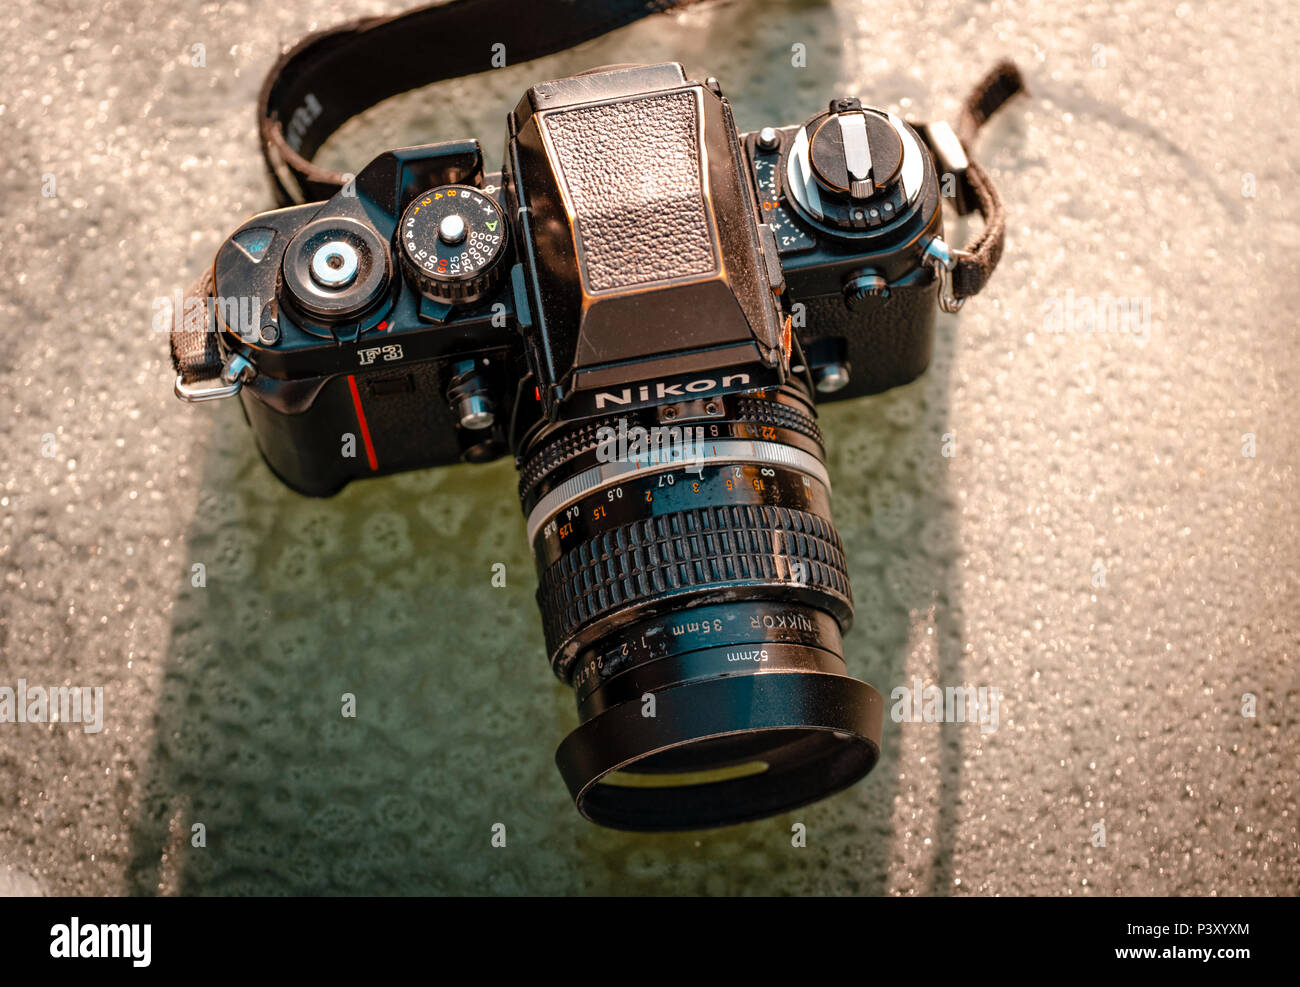 Nikon F3 single lens reflex 35mm professional film camera, First launched in 1980 and remained in production until 2001 - Stock Image